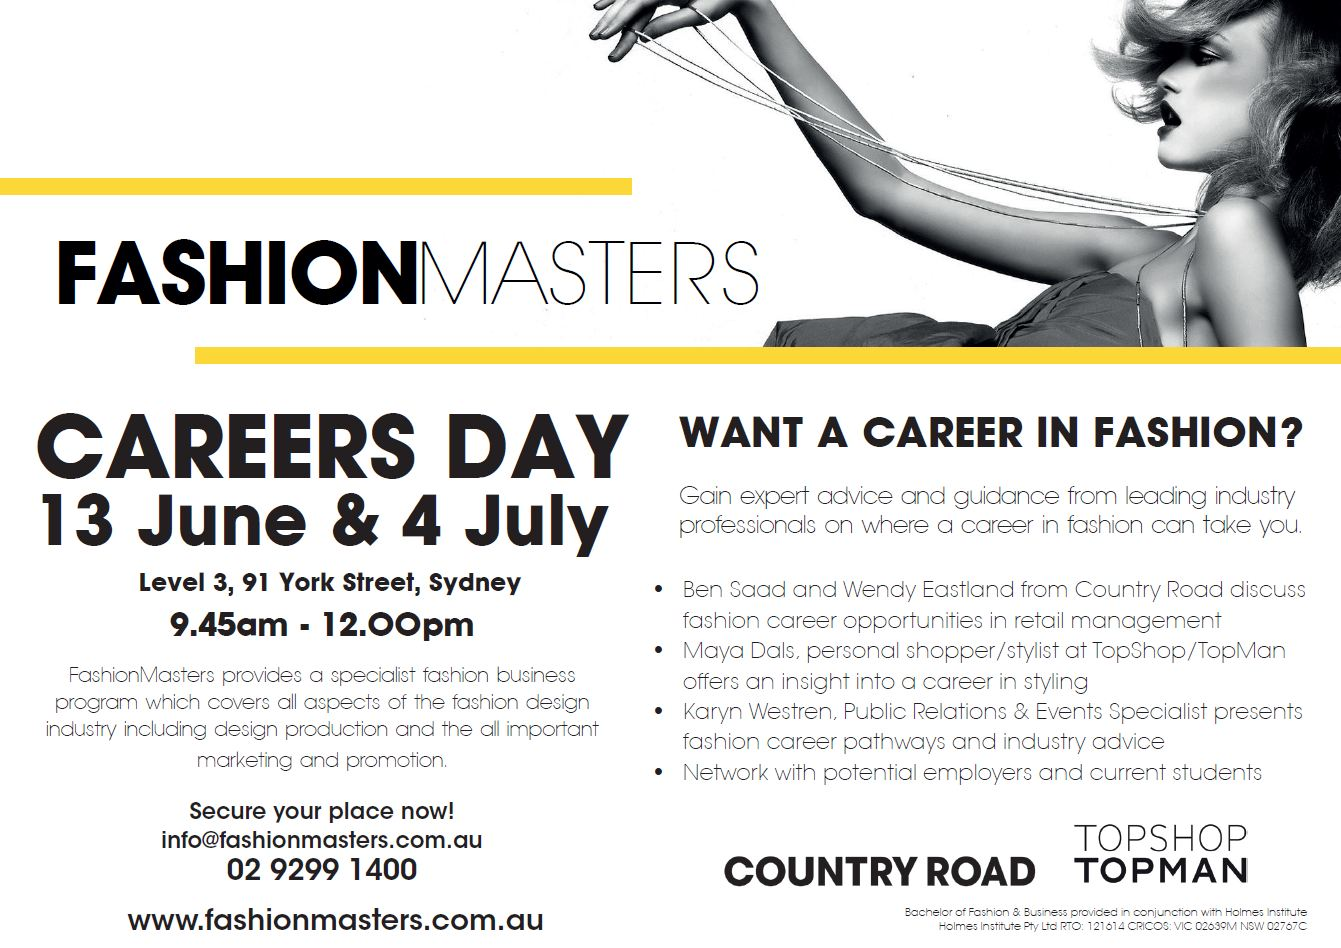 how to get a career in fashion marketing